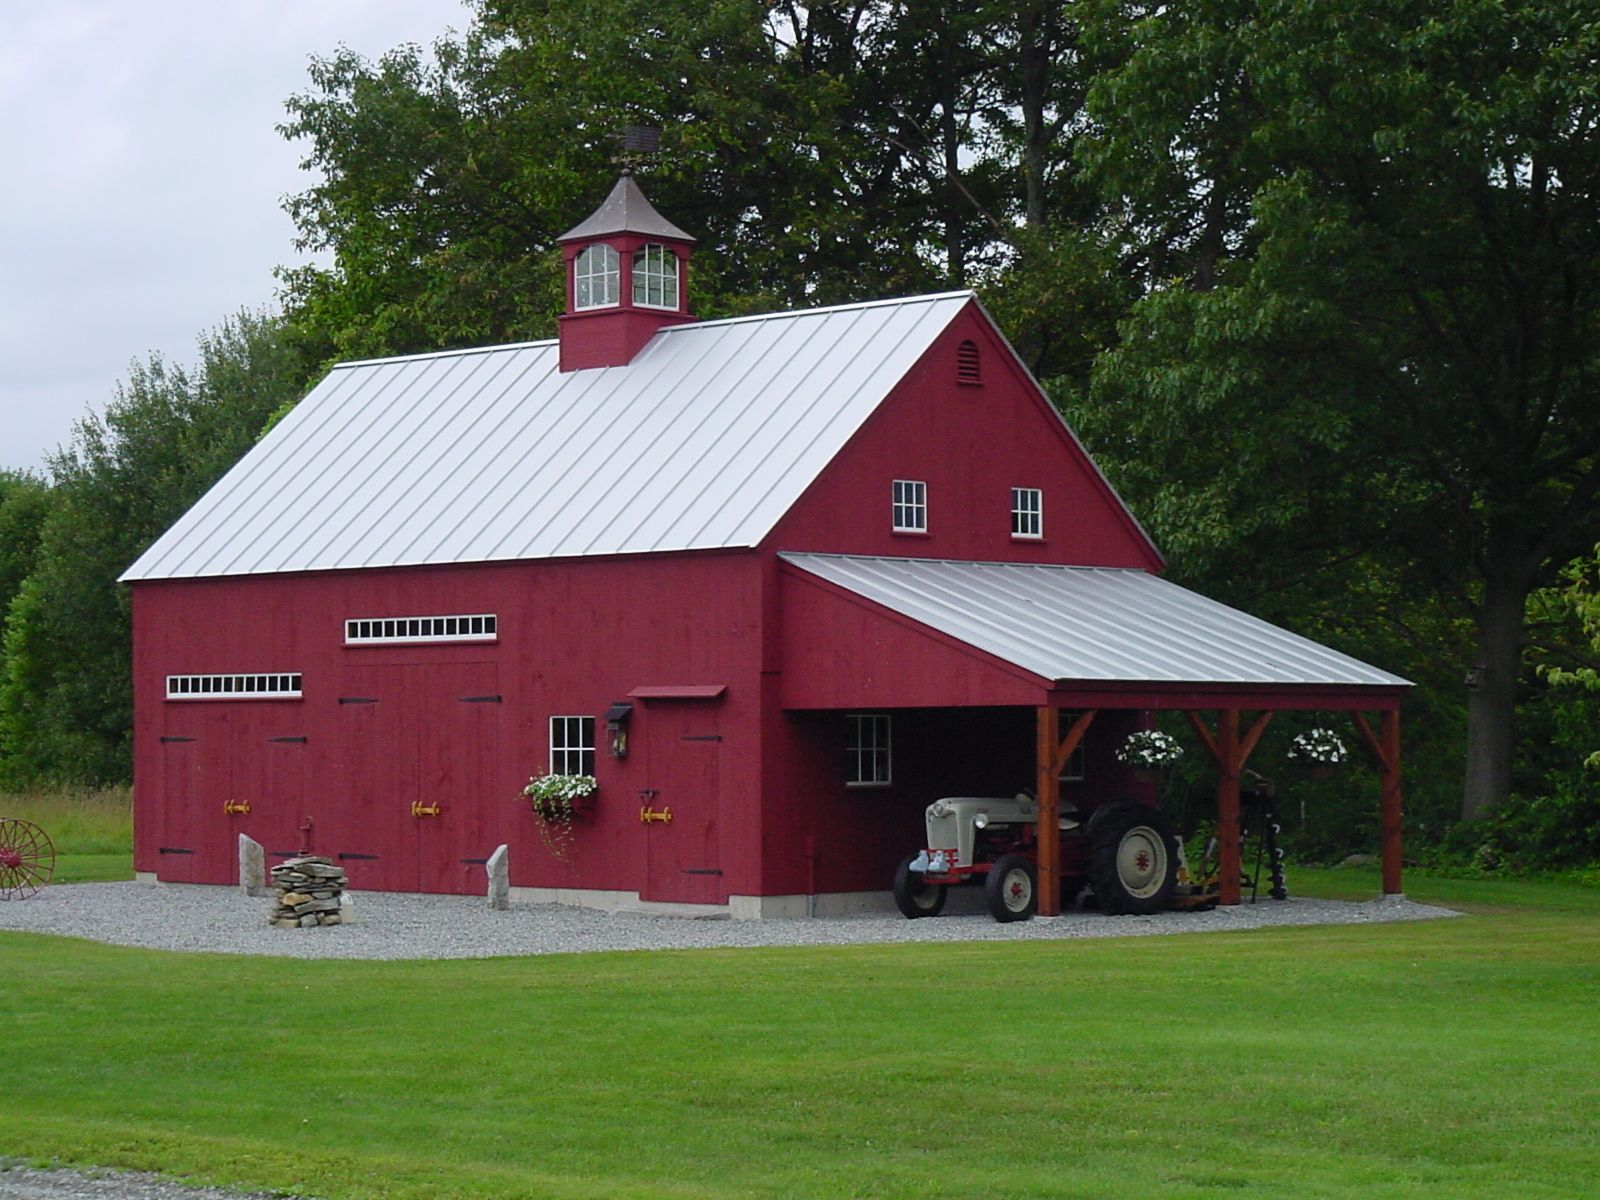 Our 1 1 2 story barn 22 39 x 36 39 with 12 39 x 20 39 open lean to for 2 story barns